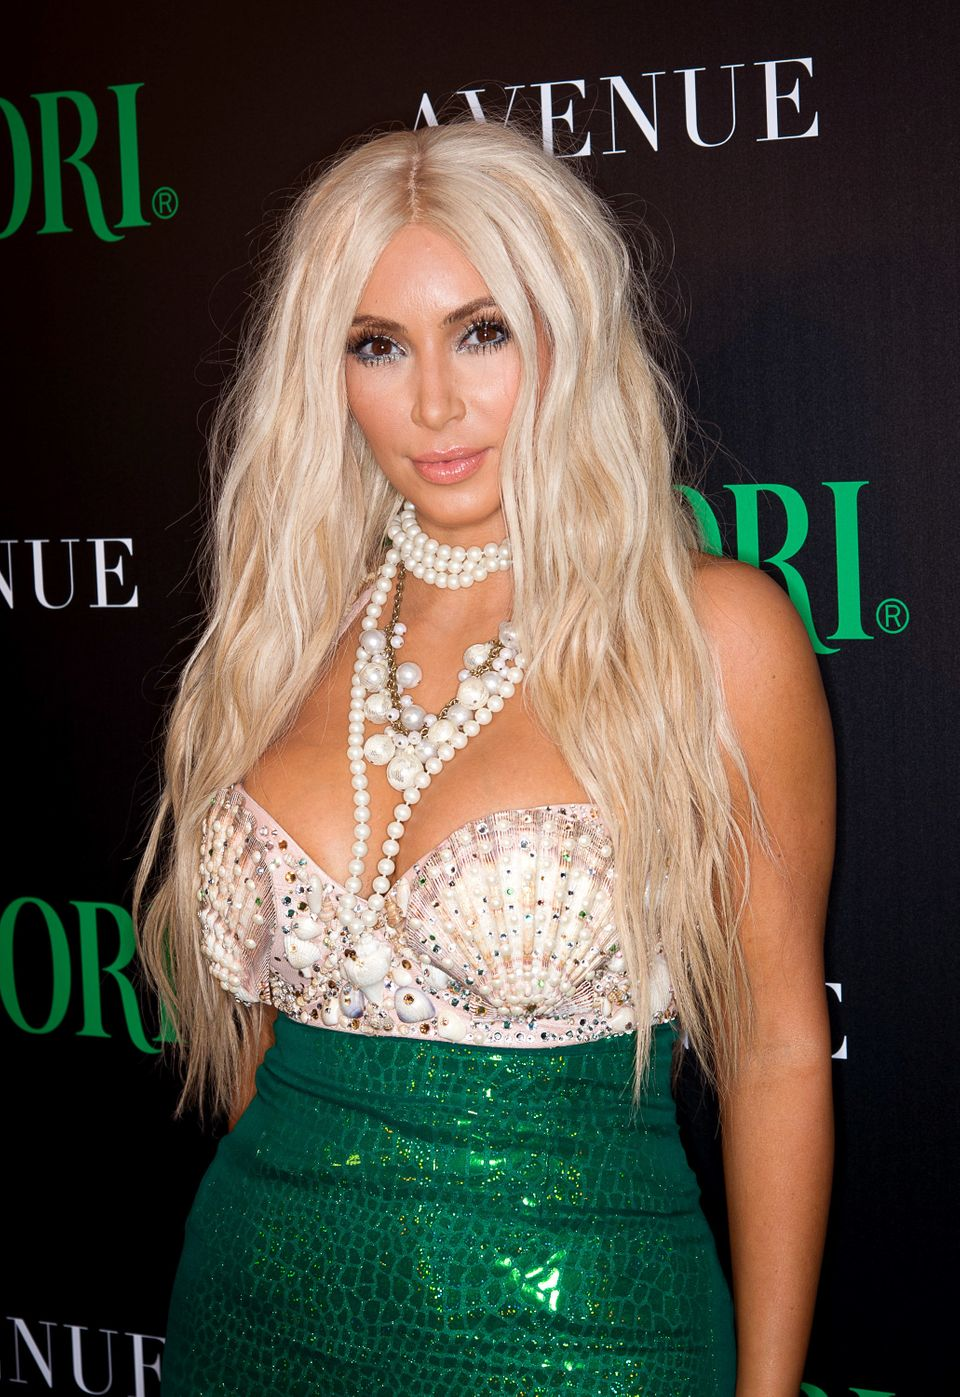 NEW YORK, NY - OCTOBER 27:  Kim Kardashian attends 2nd Annual Midori Green Halloween Party at Avenue on October 27, 2012 in N